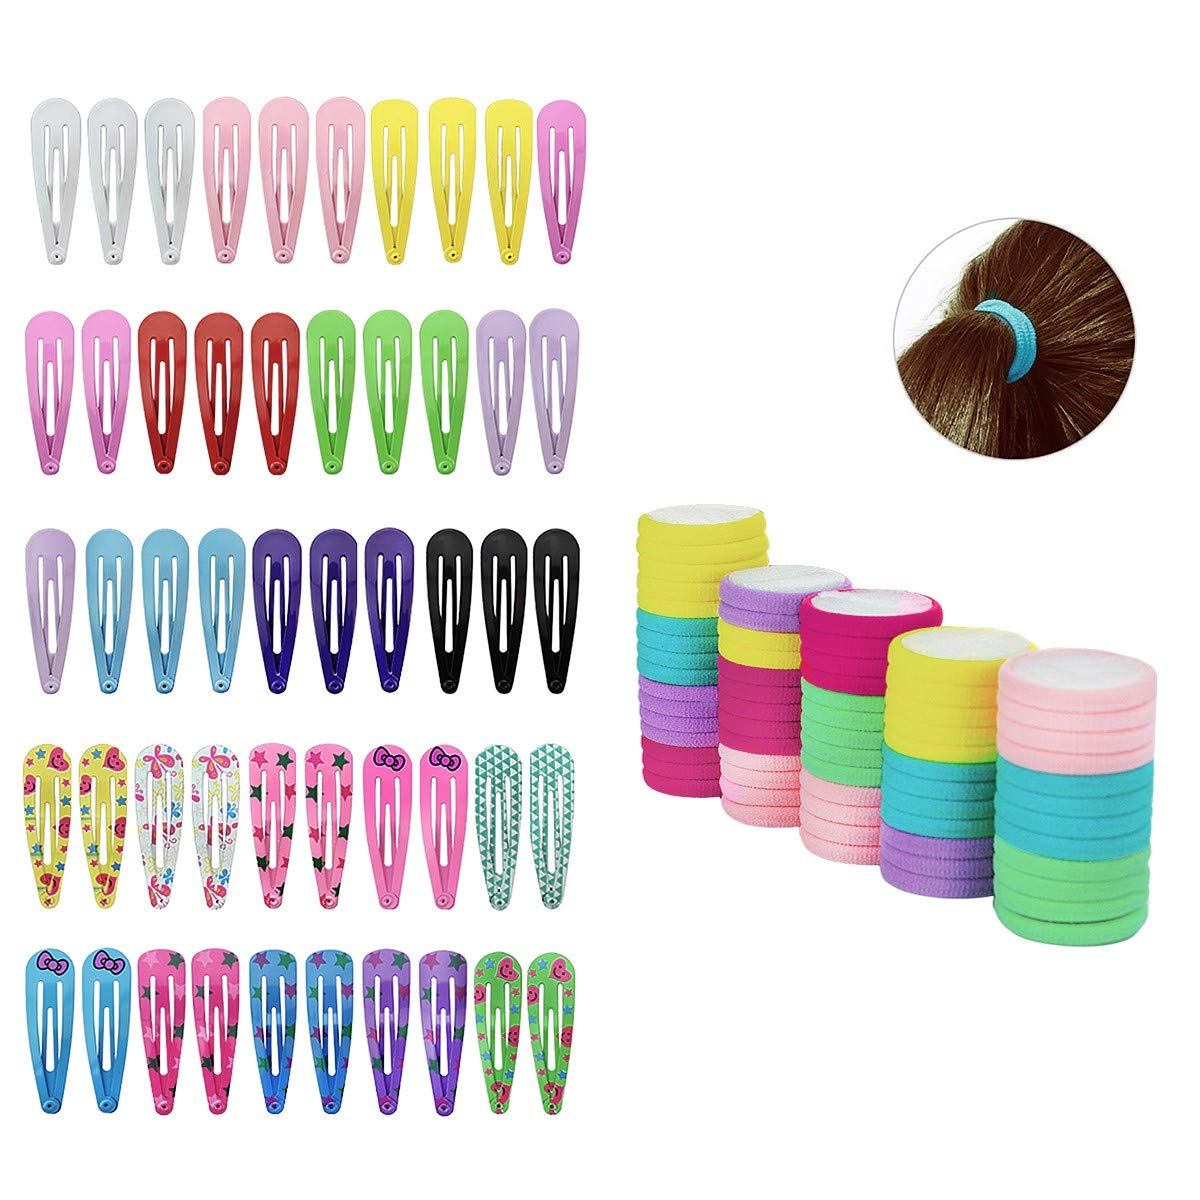 HabiKox 50pcs Hair Clips and 66pcs Hair Bands Set Plain and Printed Metal Hair Clips Snap Barrettes with Elastic Rubber Hair Ties Ponytail Holders for Girls Women Toddlers Kids FQ-WXL9001/WXL1